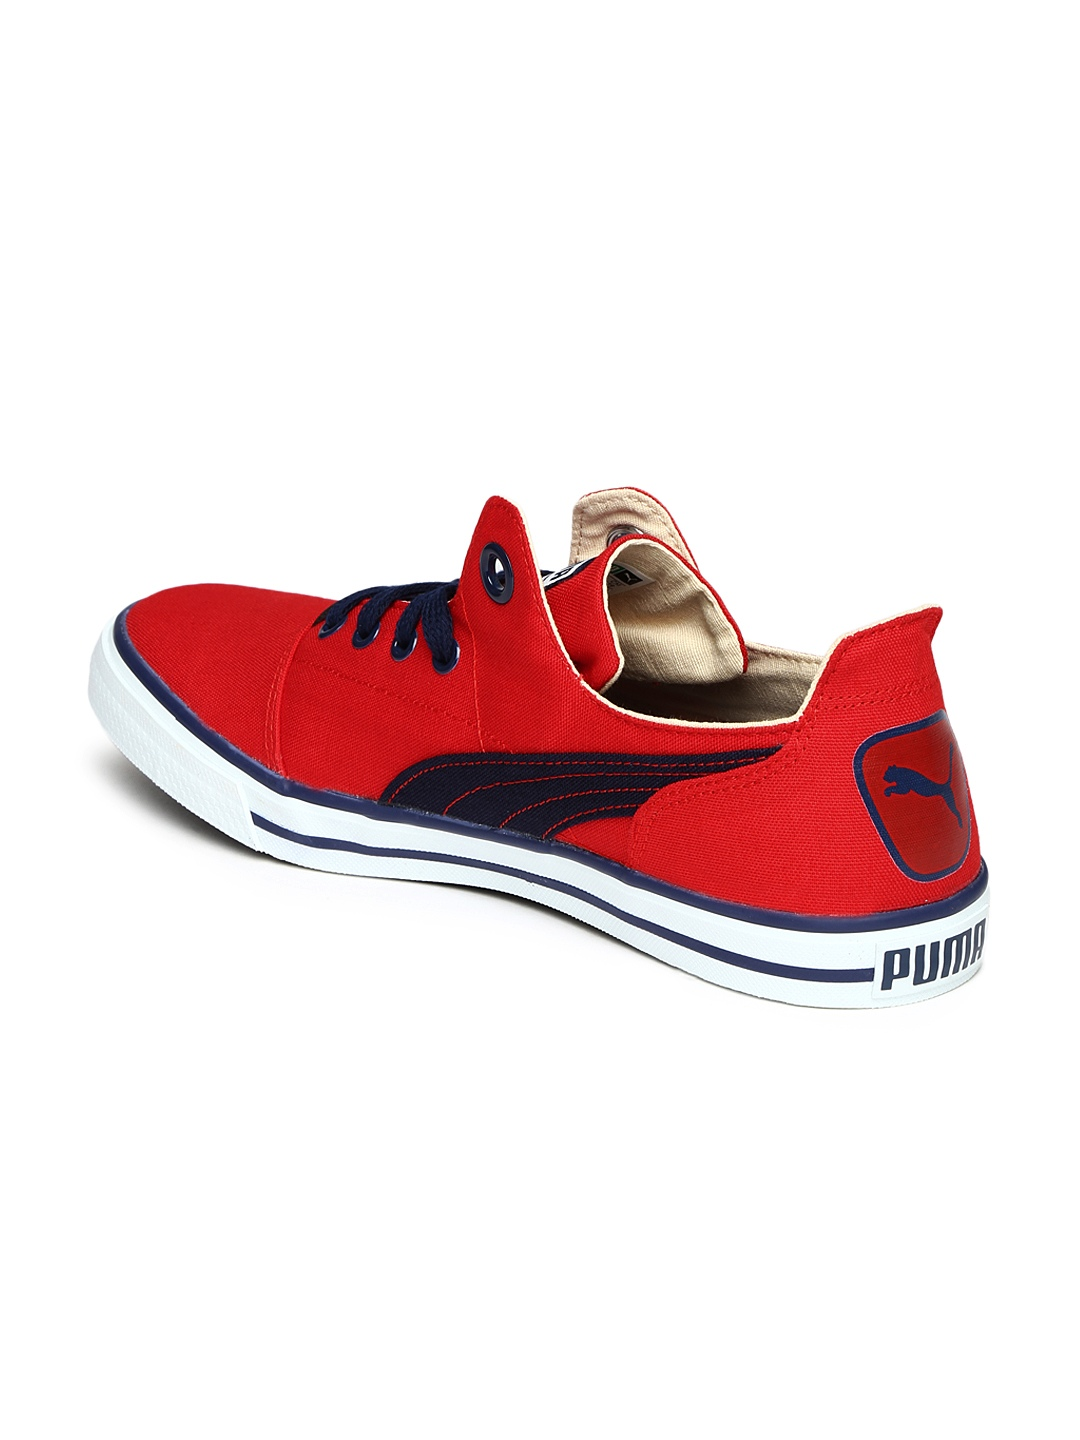 myntra unisex limnos cat 3 dp casual shoes 901637